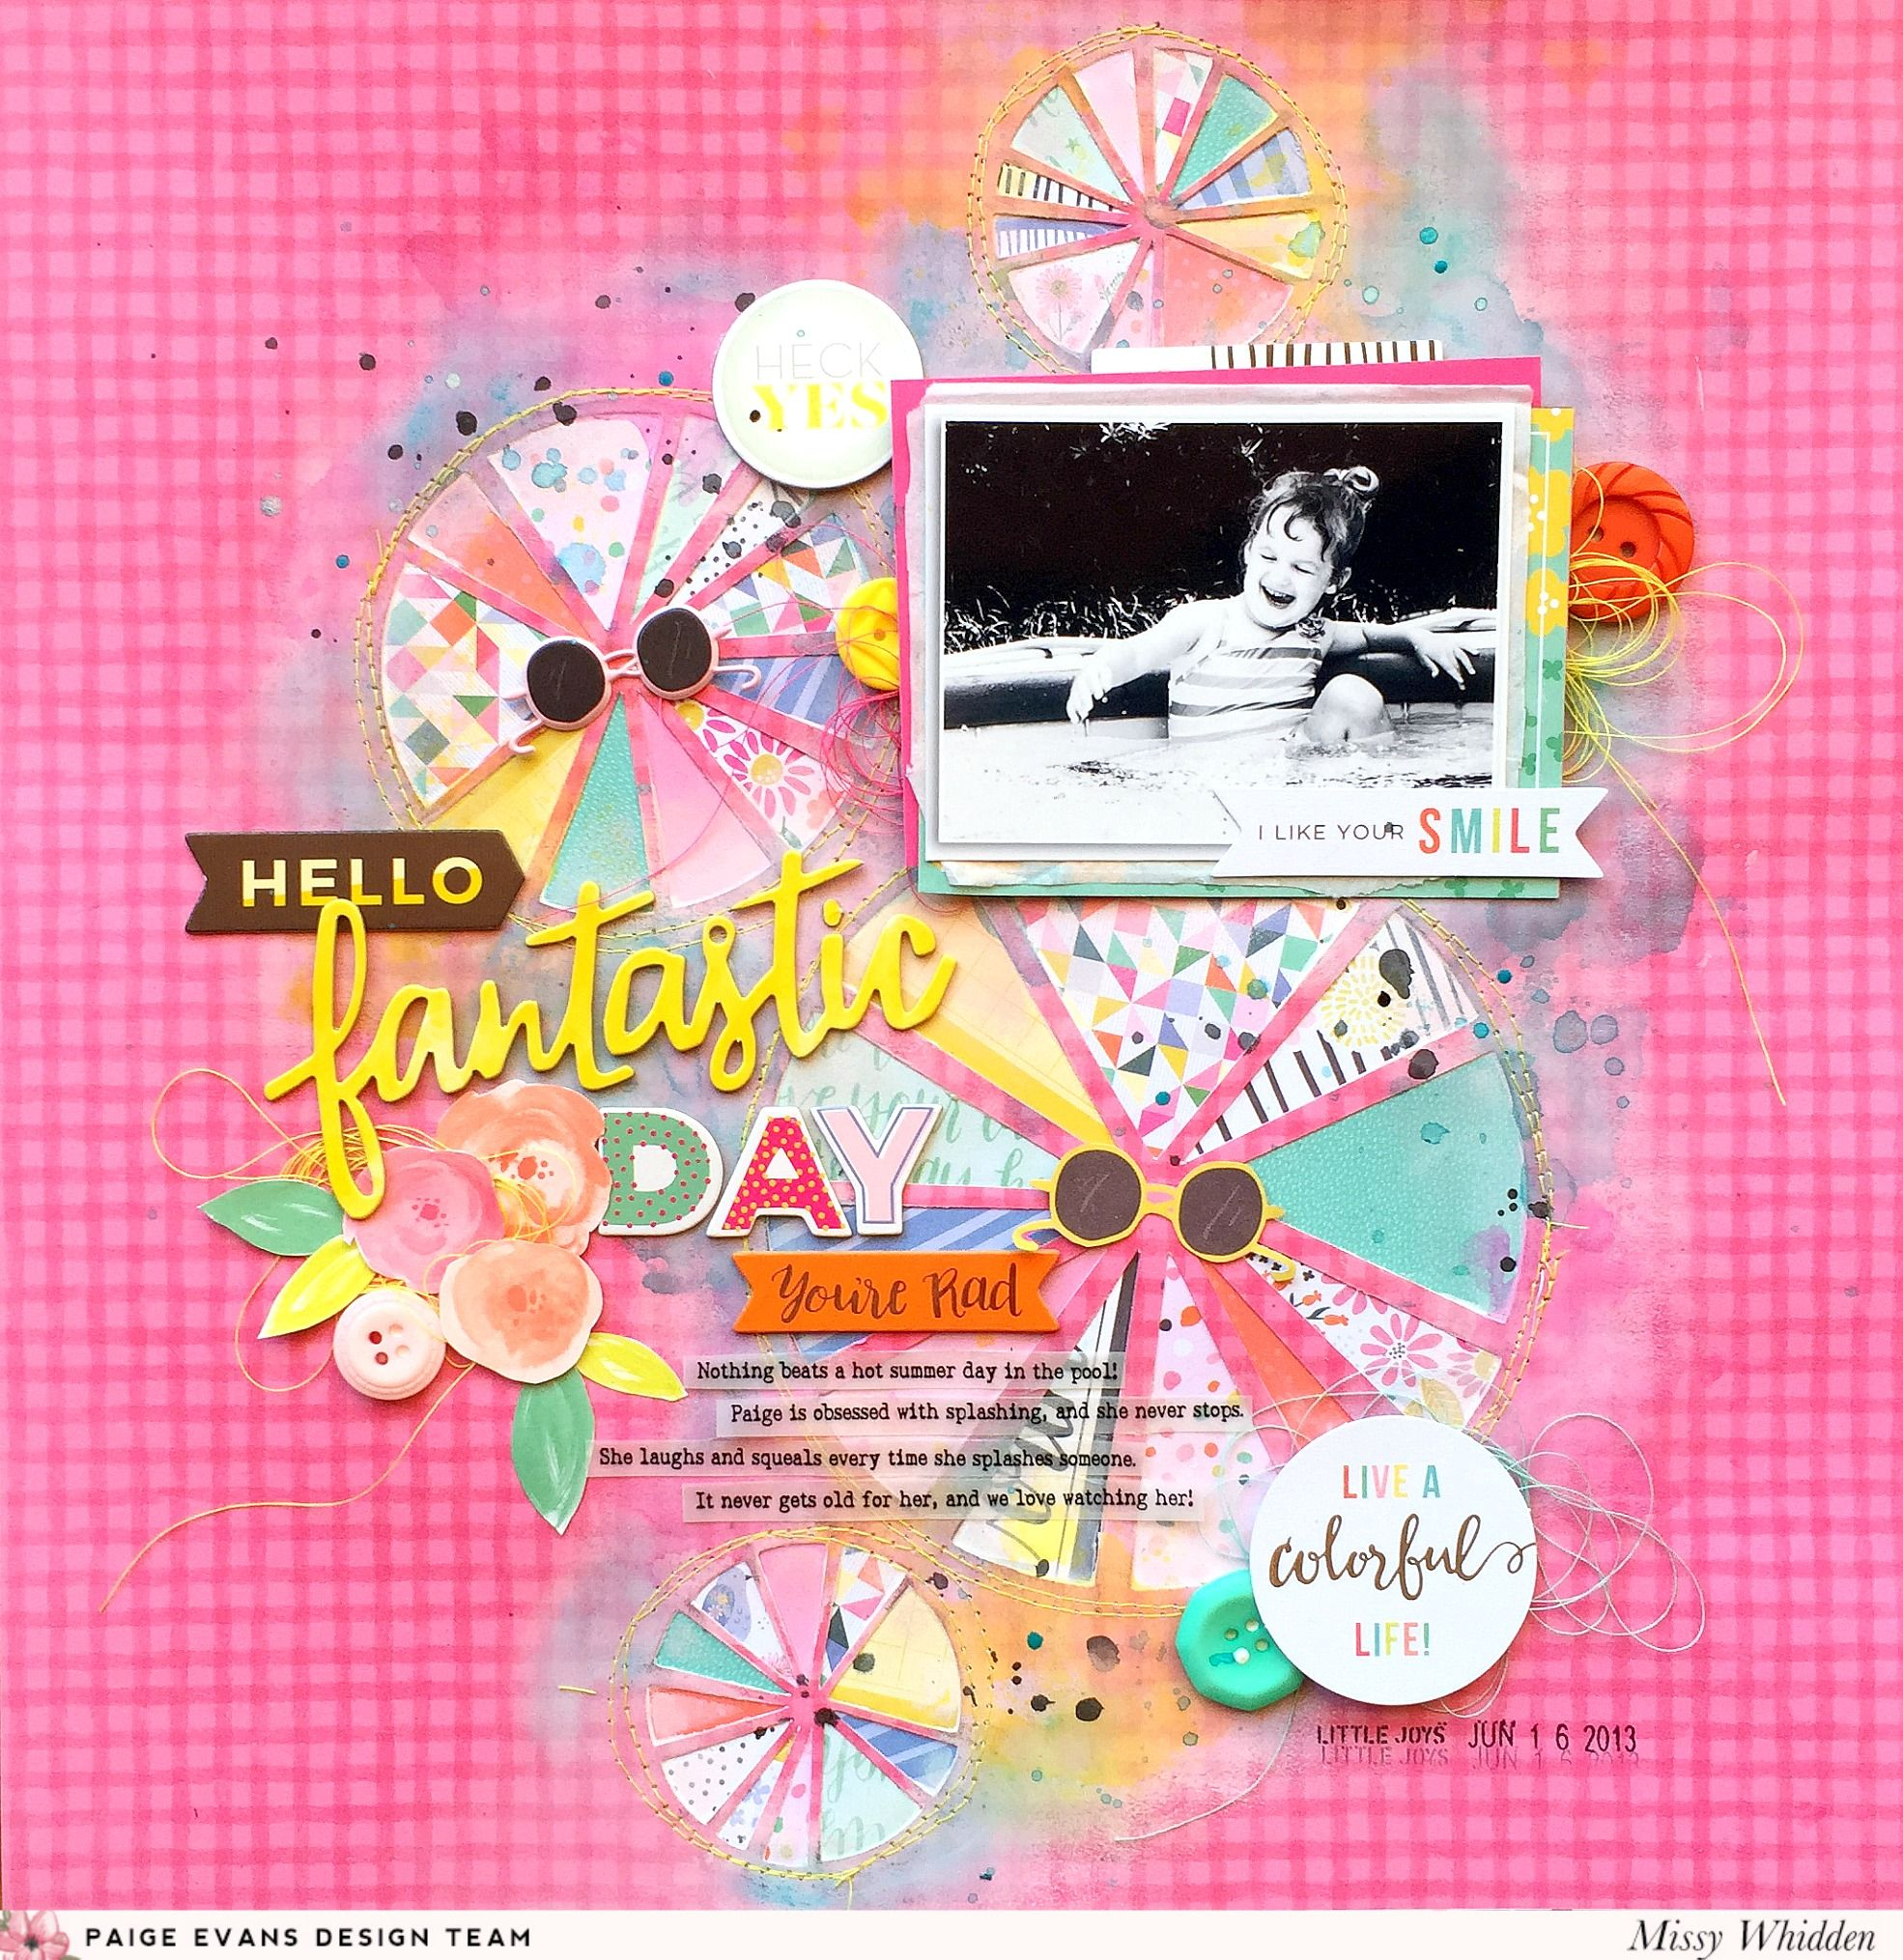 Paige Evans Design Team Project - featuring cut files & Silhouette Cameo; cut files from Silhouette Store; Oh My Heart, Fancy Free & Take Me Away collections by Paige Evans (Pink Paislee); Shimmerz Paints